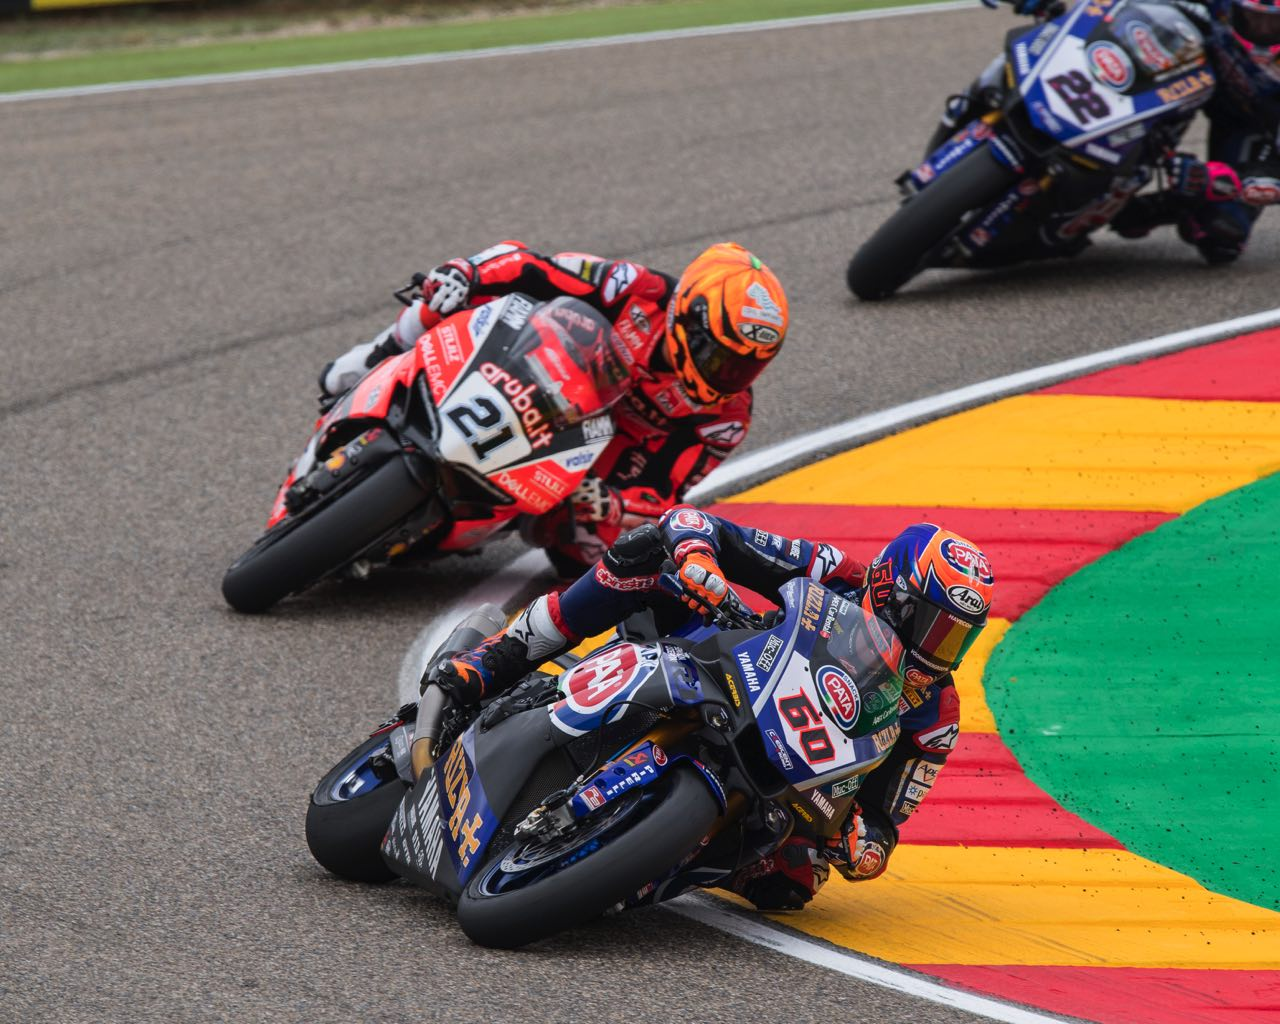 2018 Aragon | Michael van der Mark